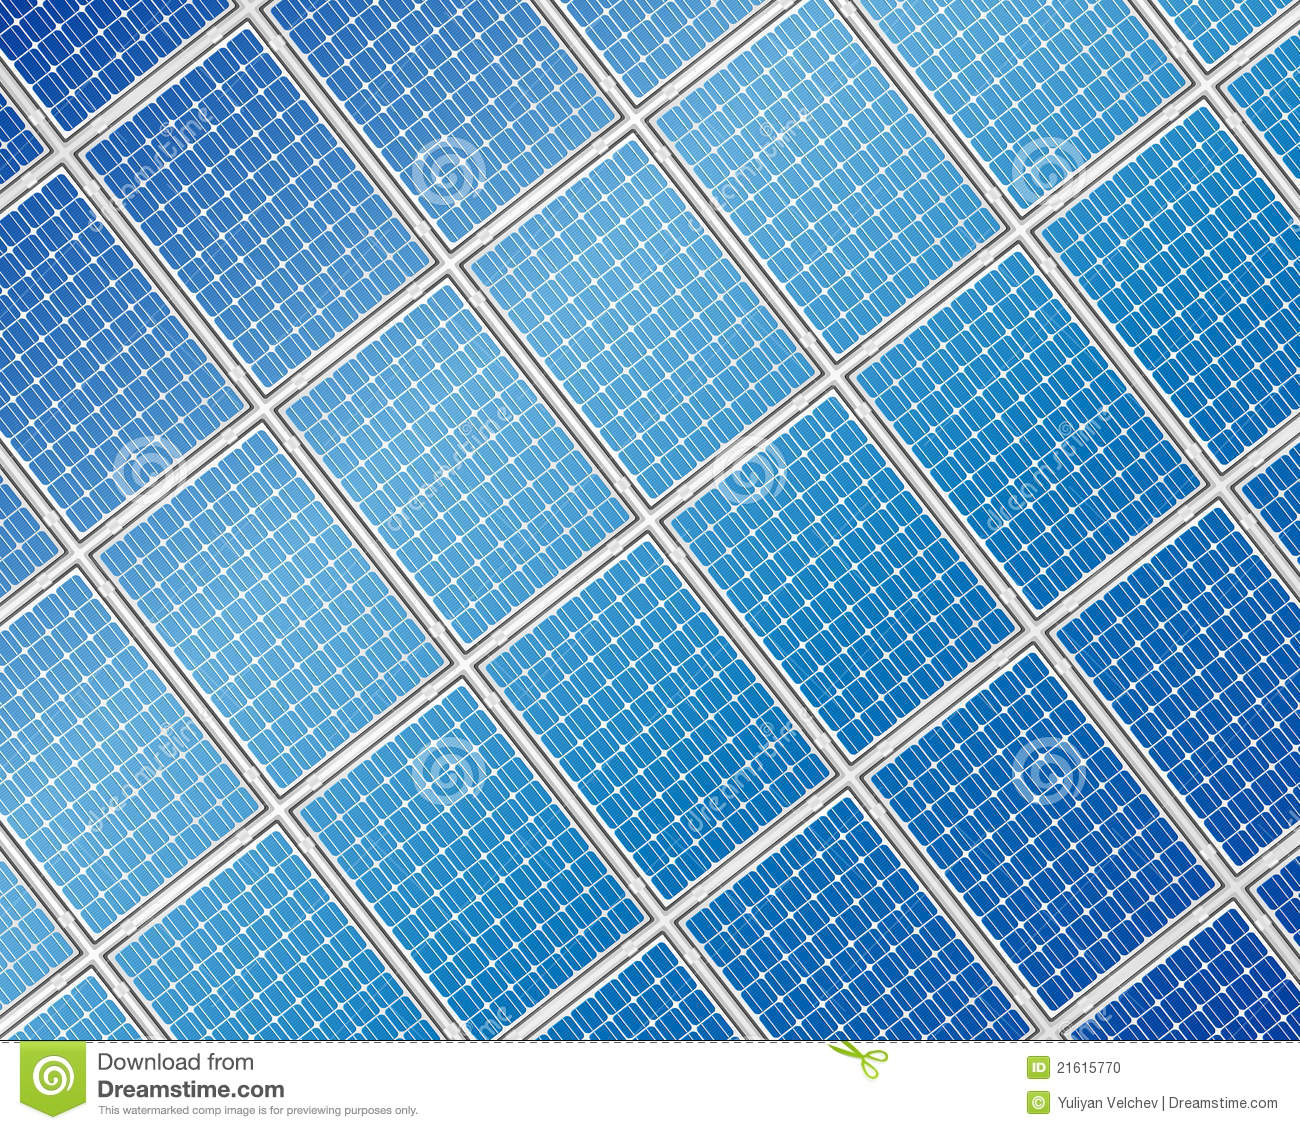 solar panel desktop wallpaper - photo #39